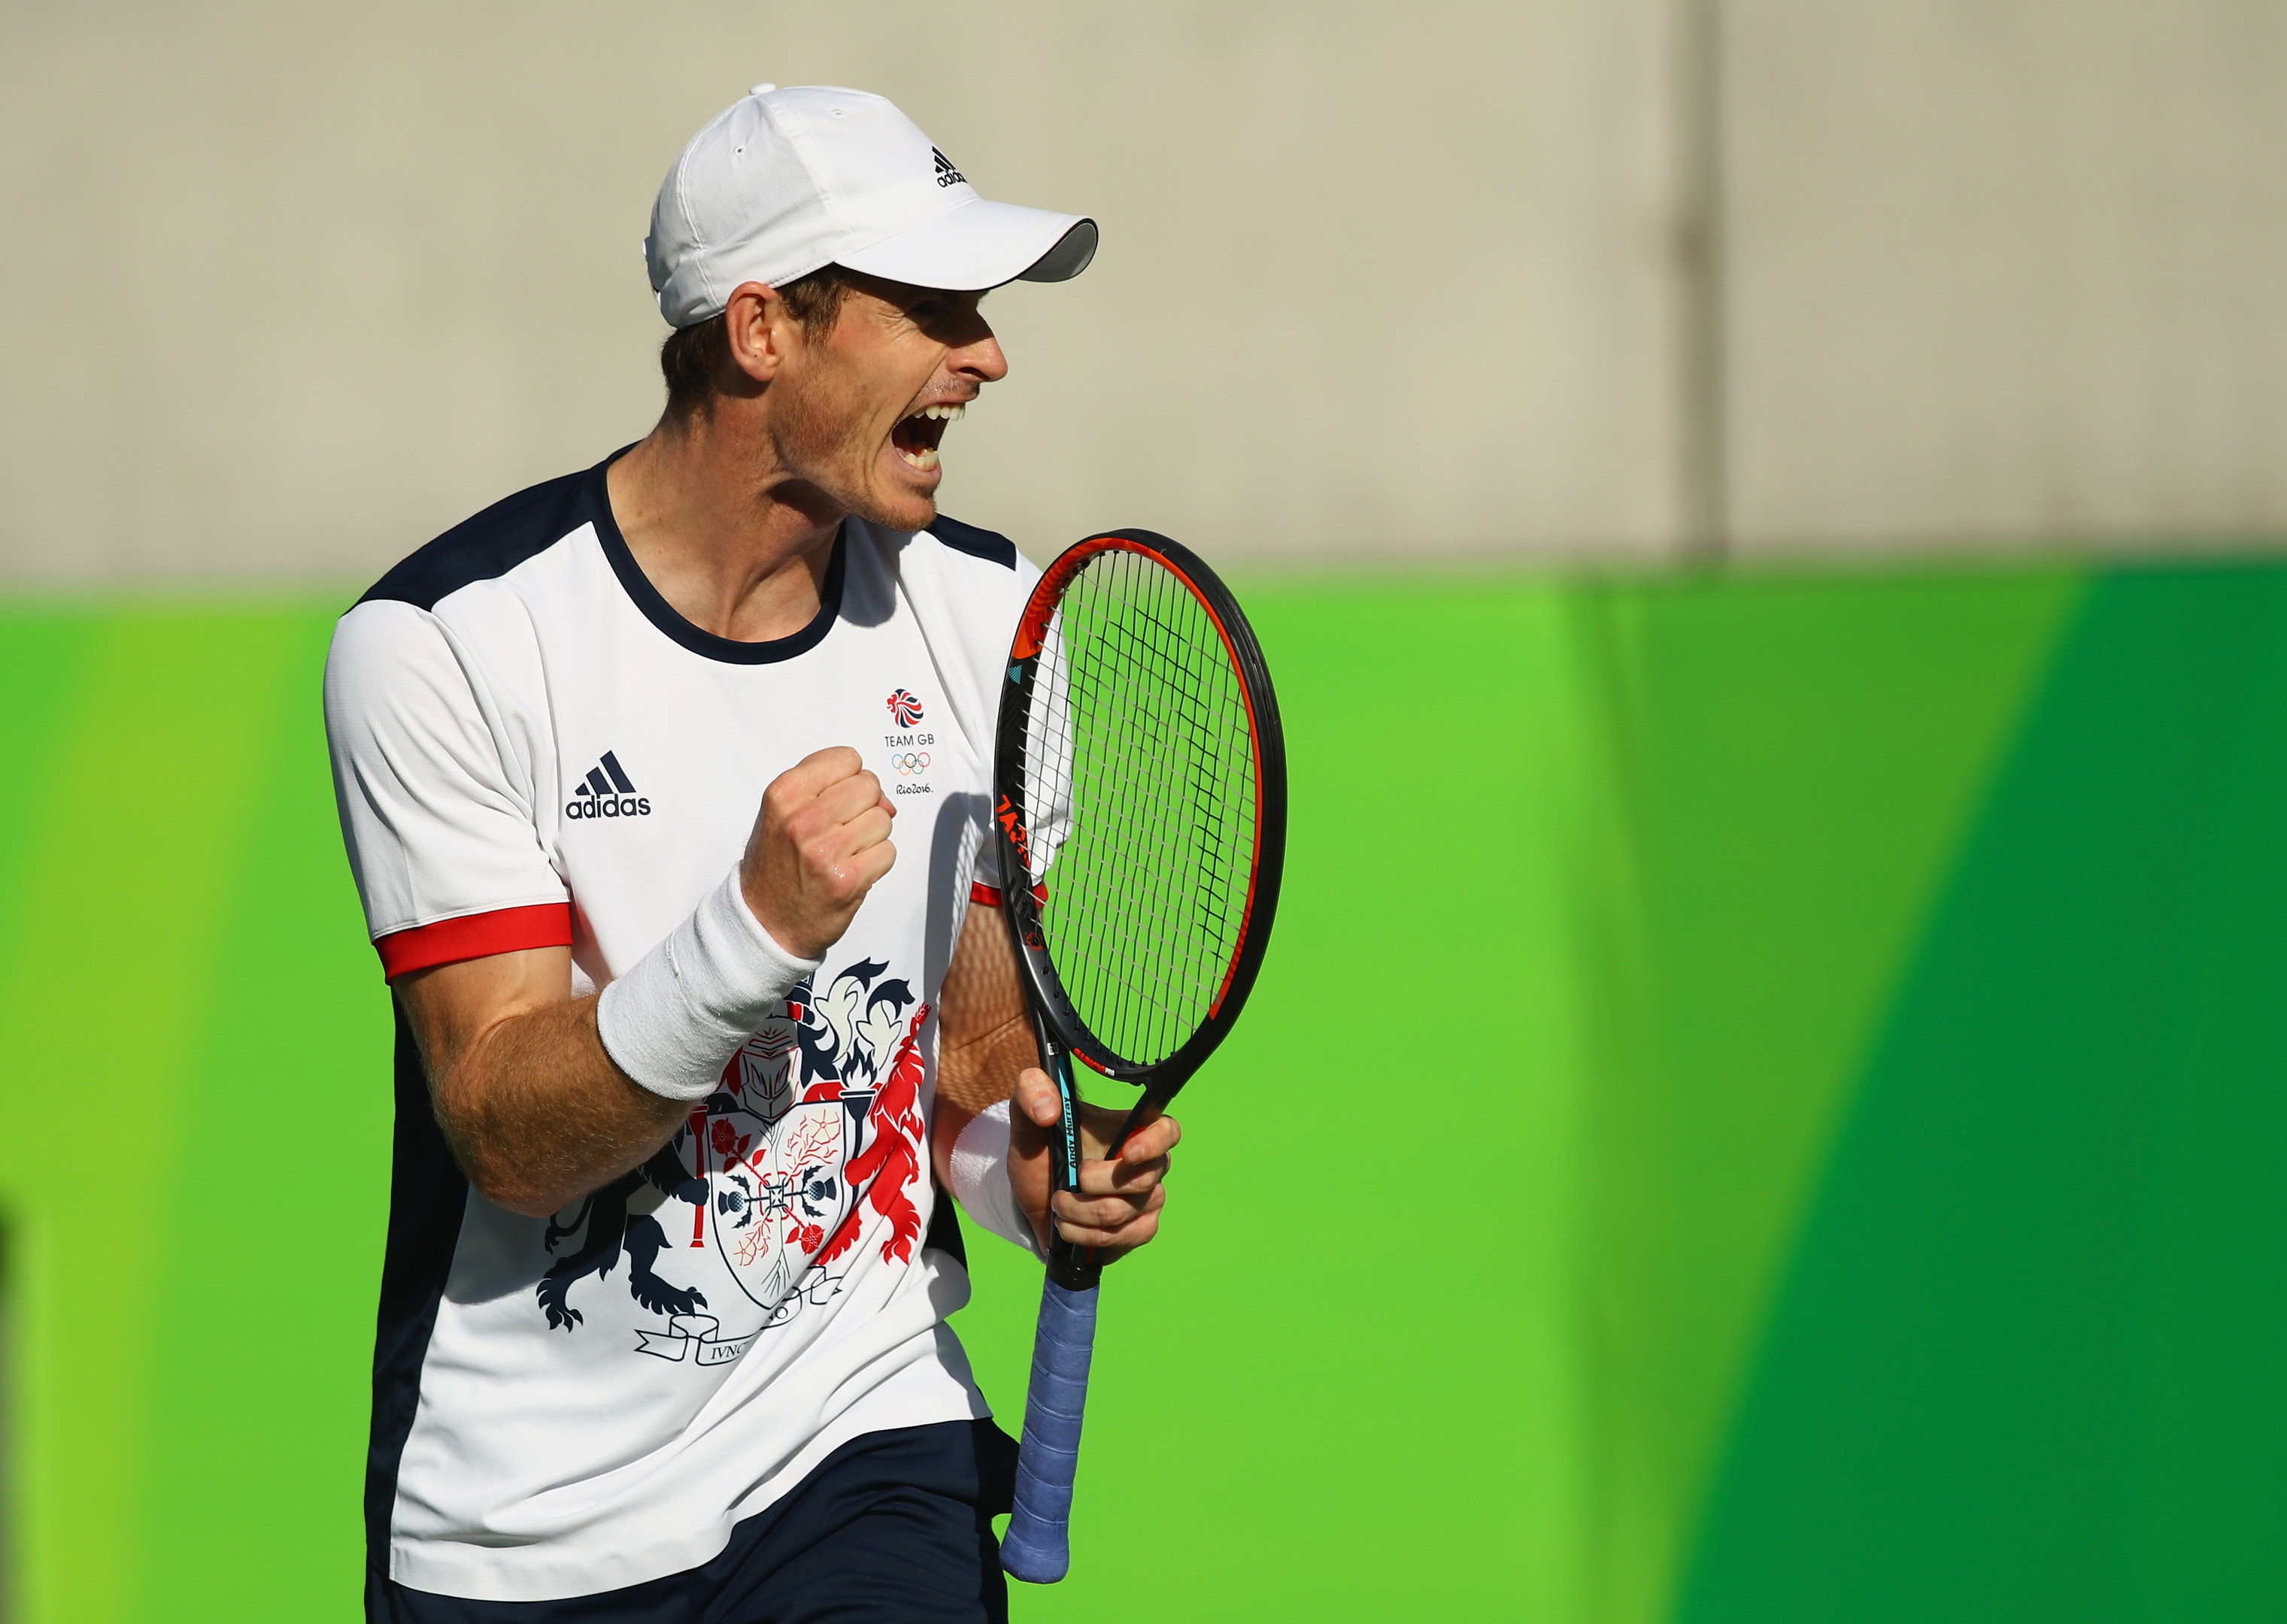 Andy Murray took gold for Britain in the tennis men's singles.